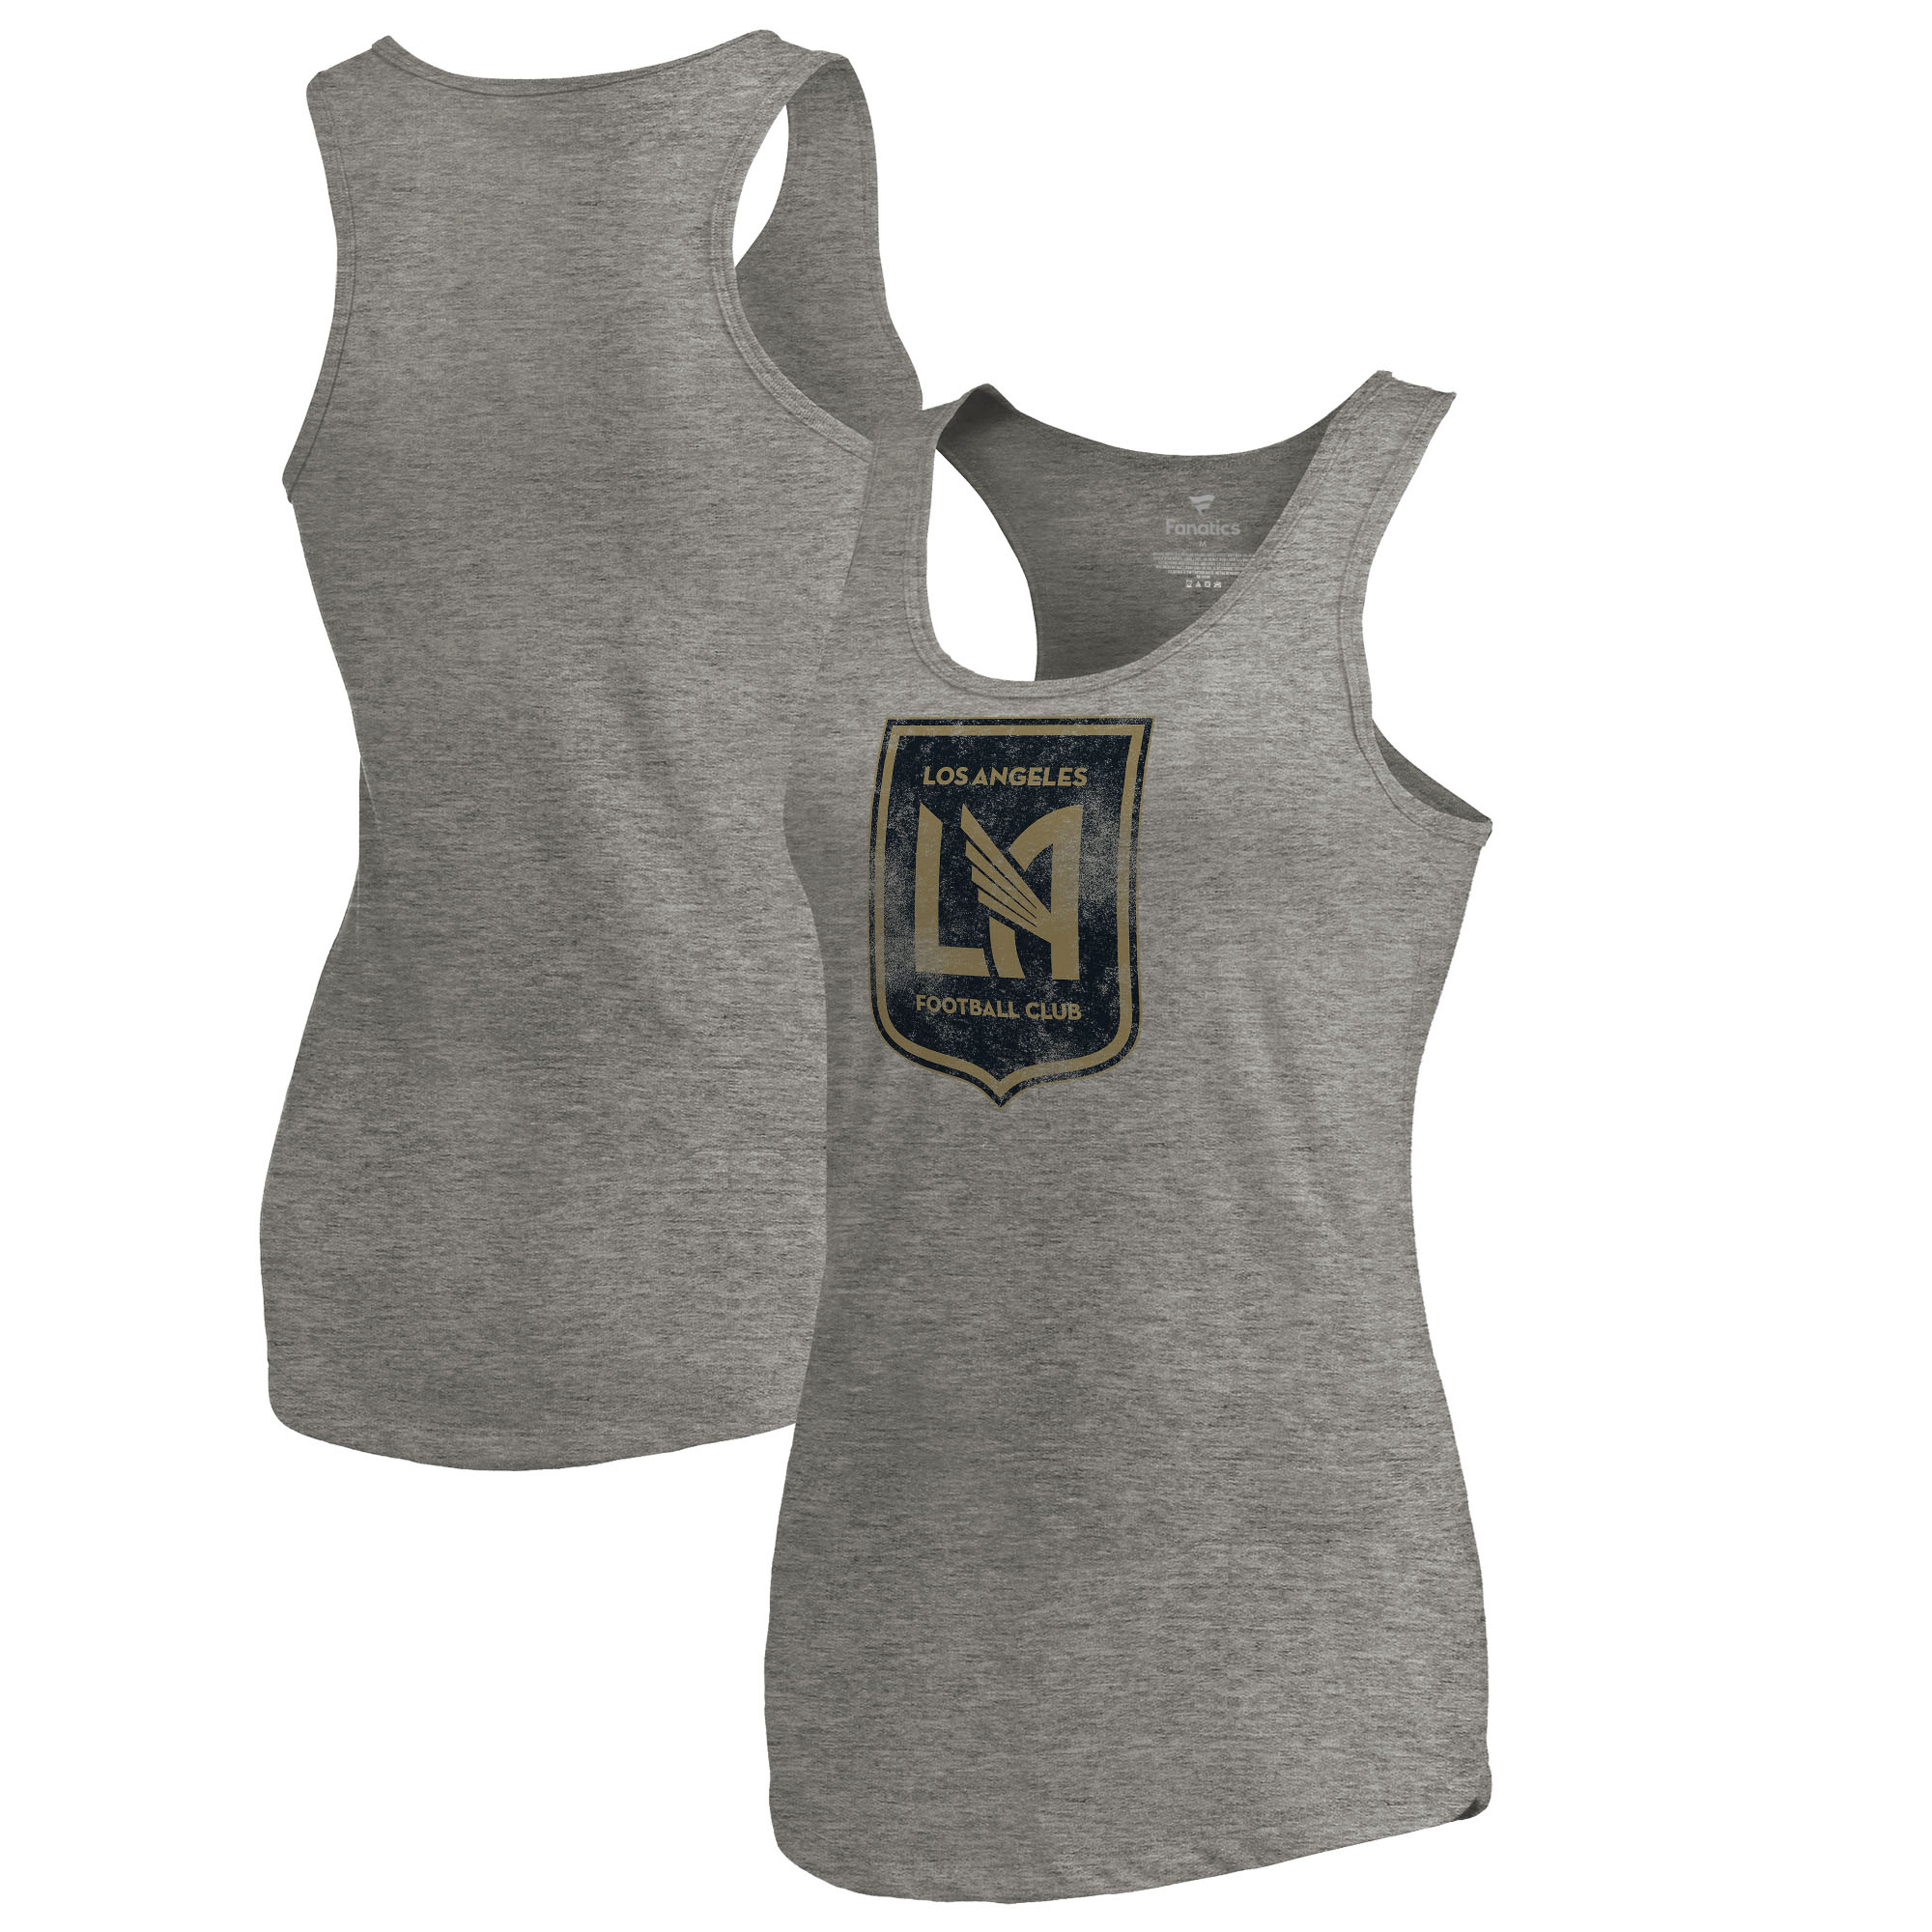 LAFC Fanatics Branded Women's Distressed Primary Logo Tri-Blend Tank Top - Heathered Gray